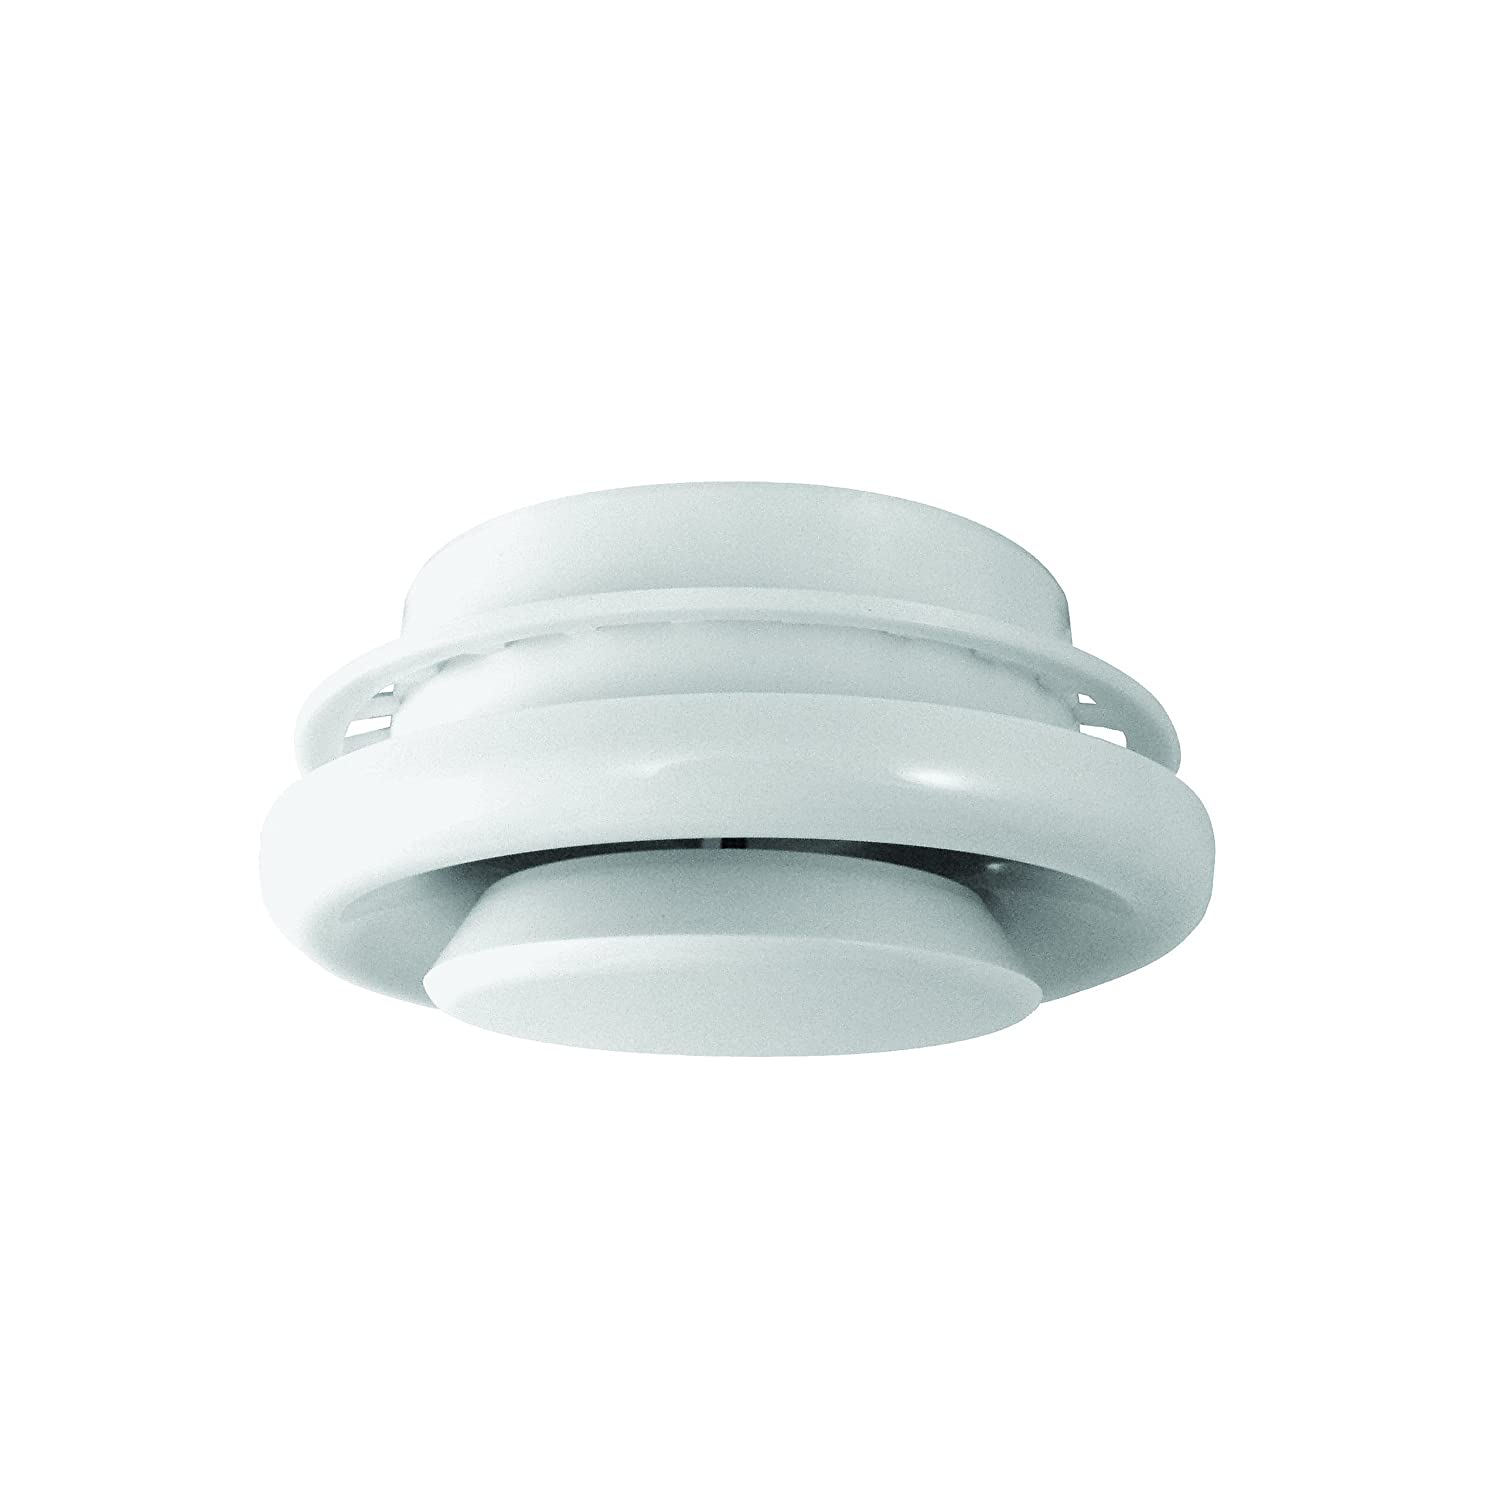 commercial front ceiling cover elmdftcomsol for solid vent model comm diffuser draft elima shop